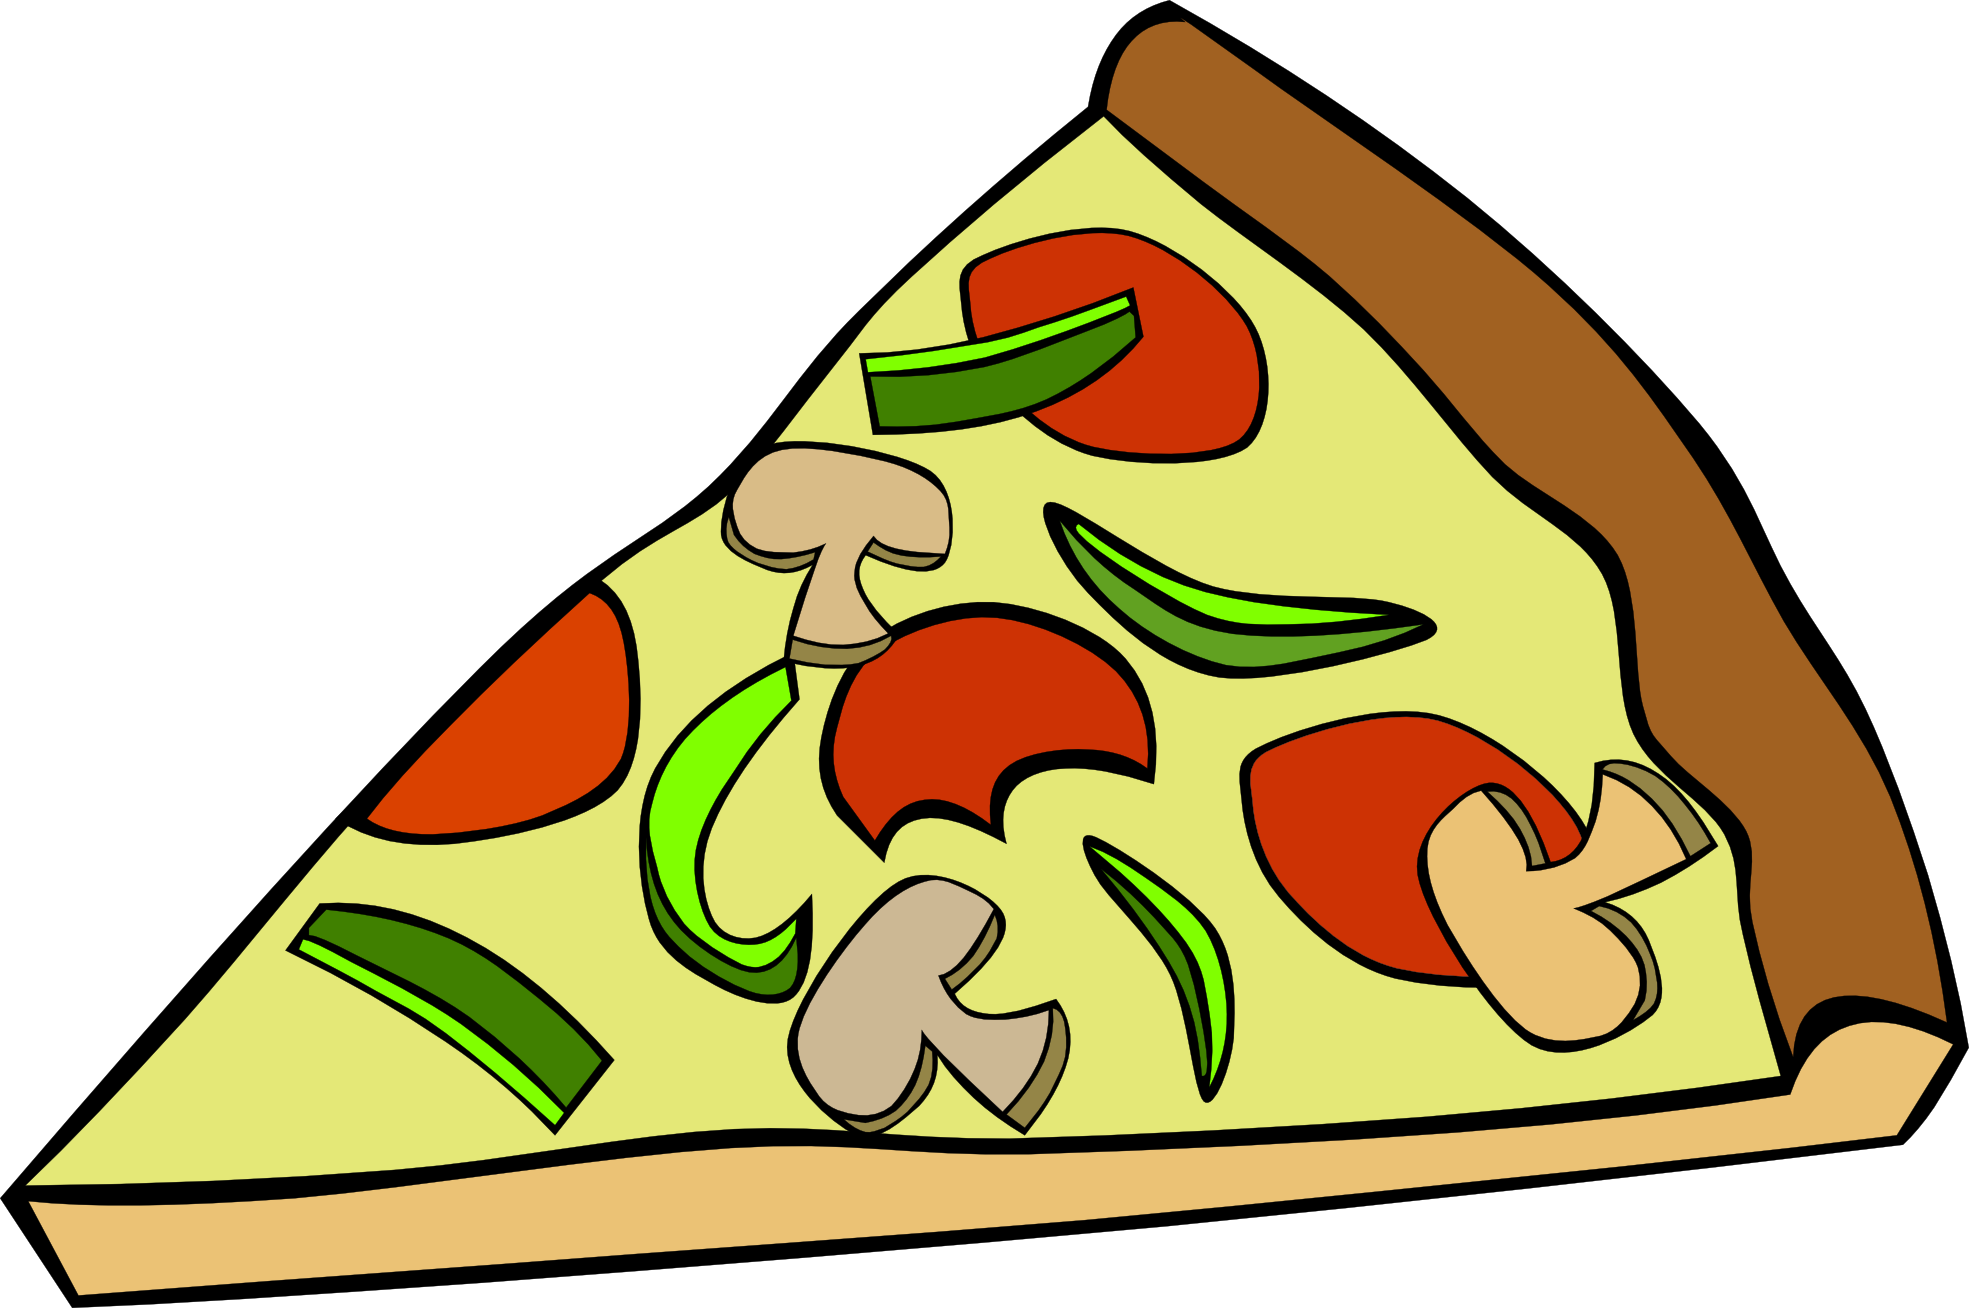 Sandwich clipart triangular Tray Lunch Table Clipart Tray